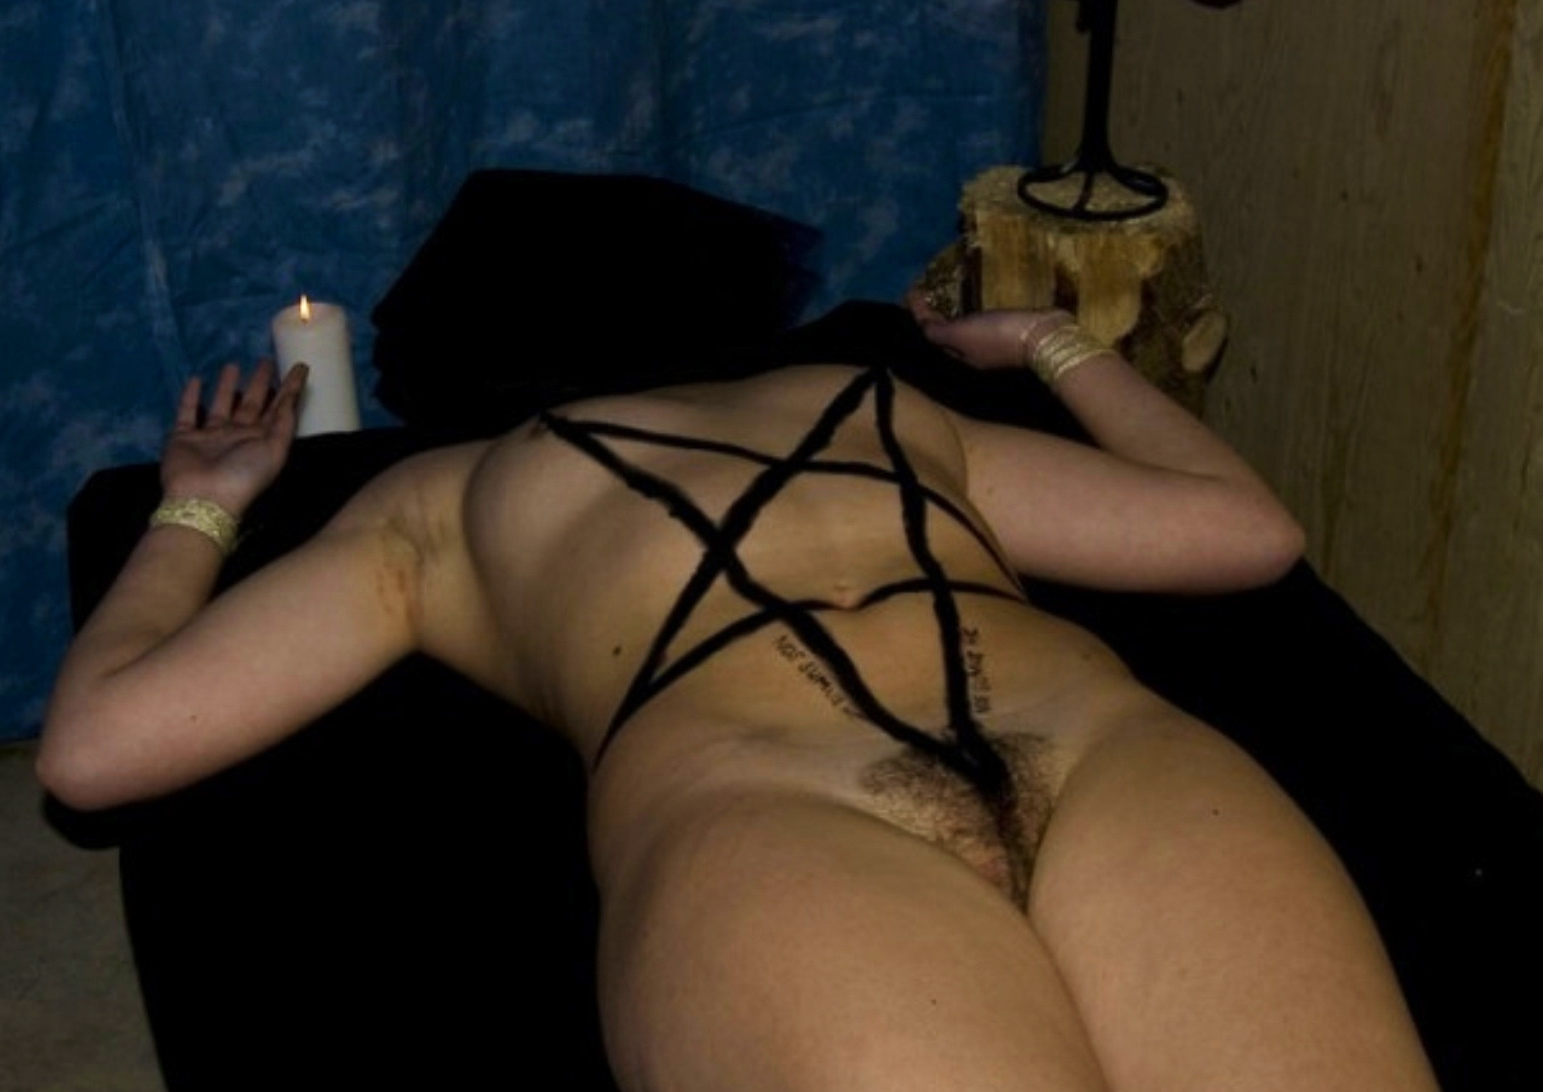 not torture. think, gangbang yellow blowjob dick slowly interesting. Prompt